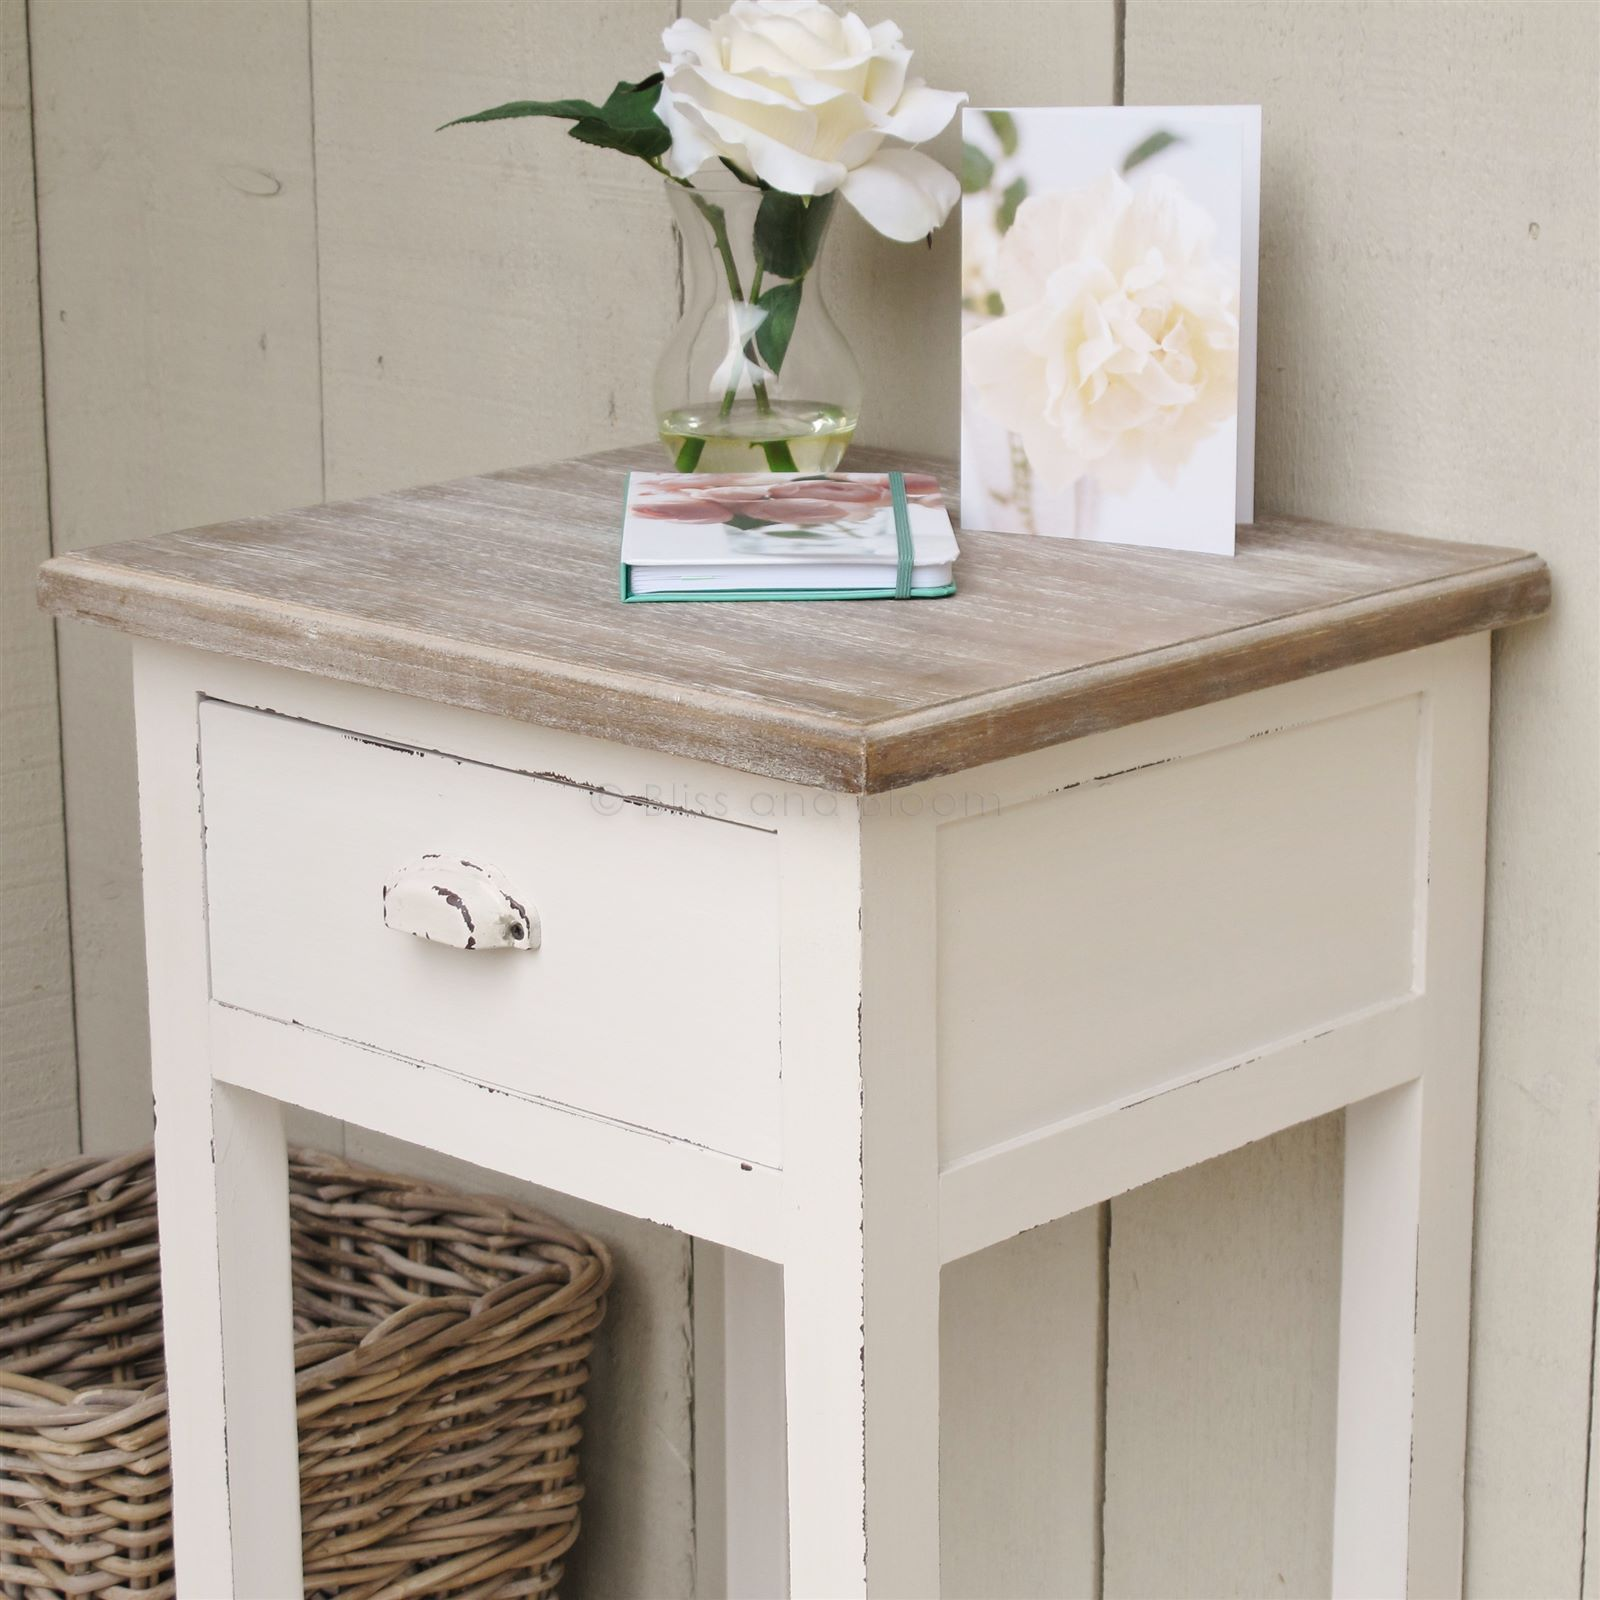 white end table focal point for the room looks great and distressed tables tures furniture design off round plastic outdoor narrow coffee espresso chairside sofa made from pallets